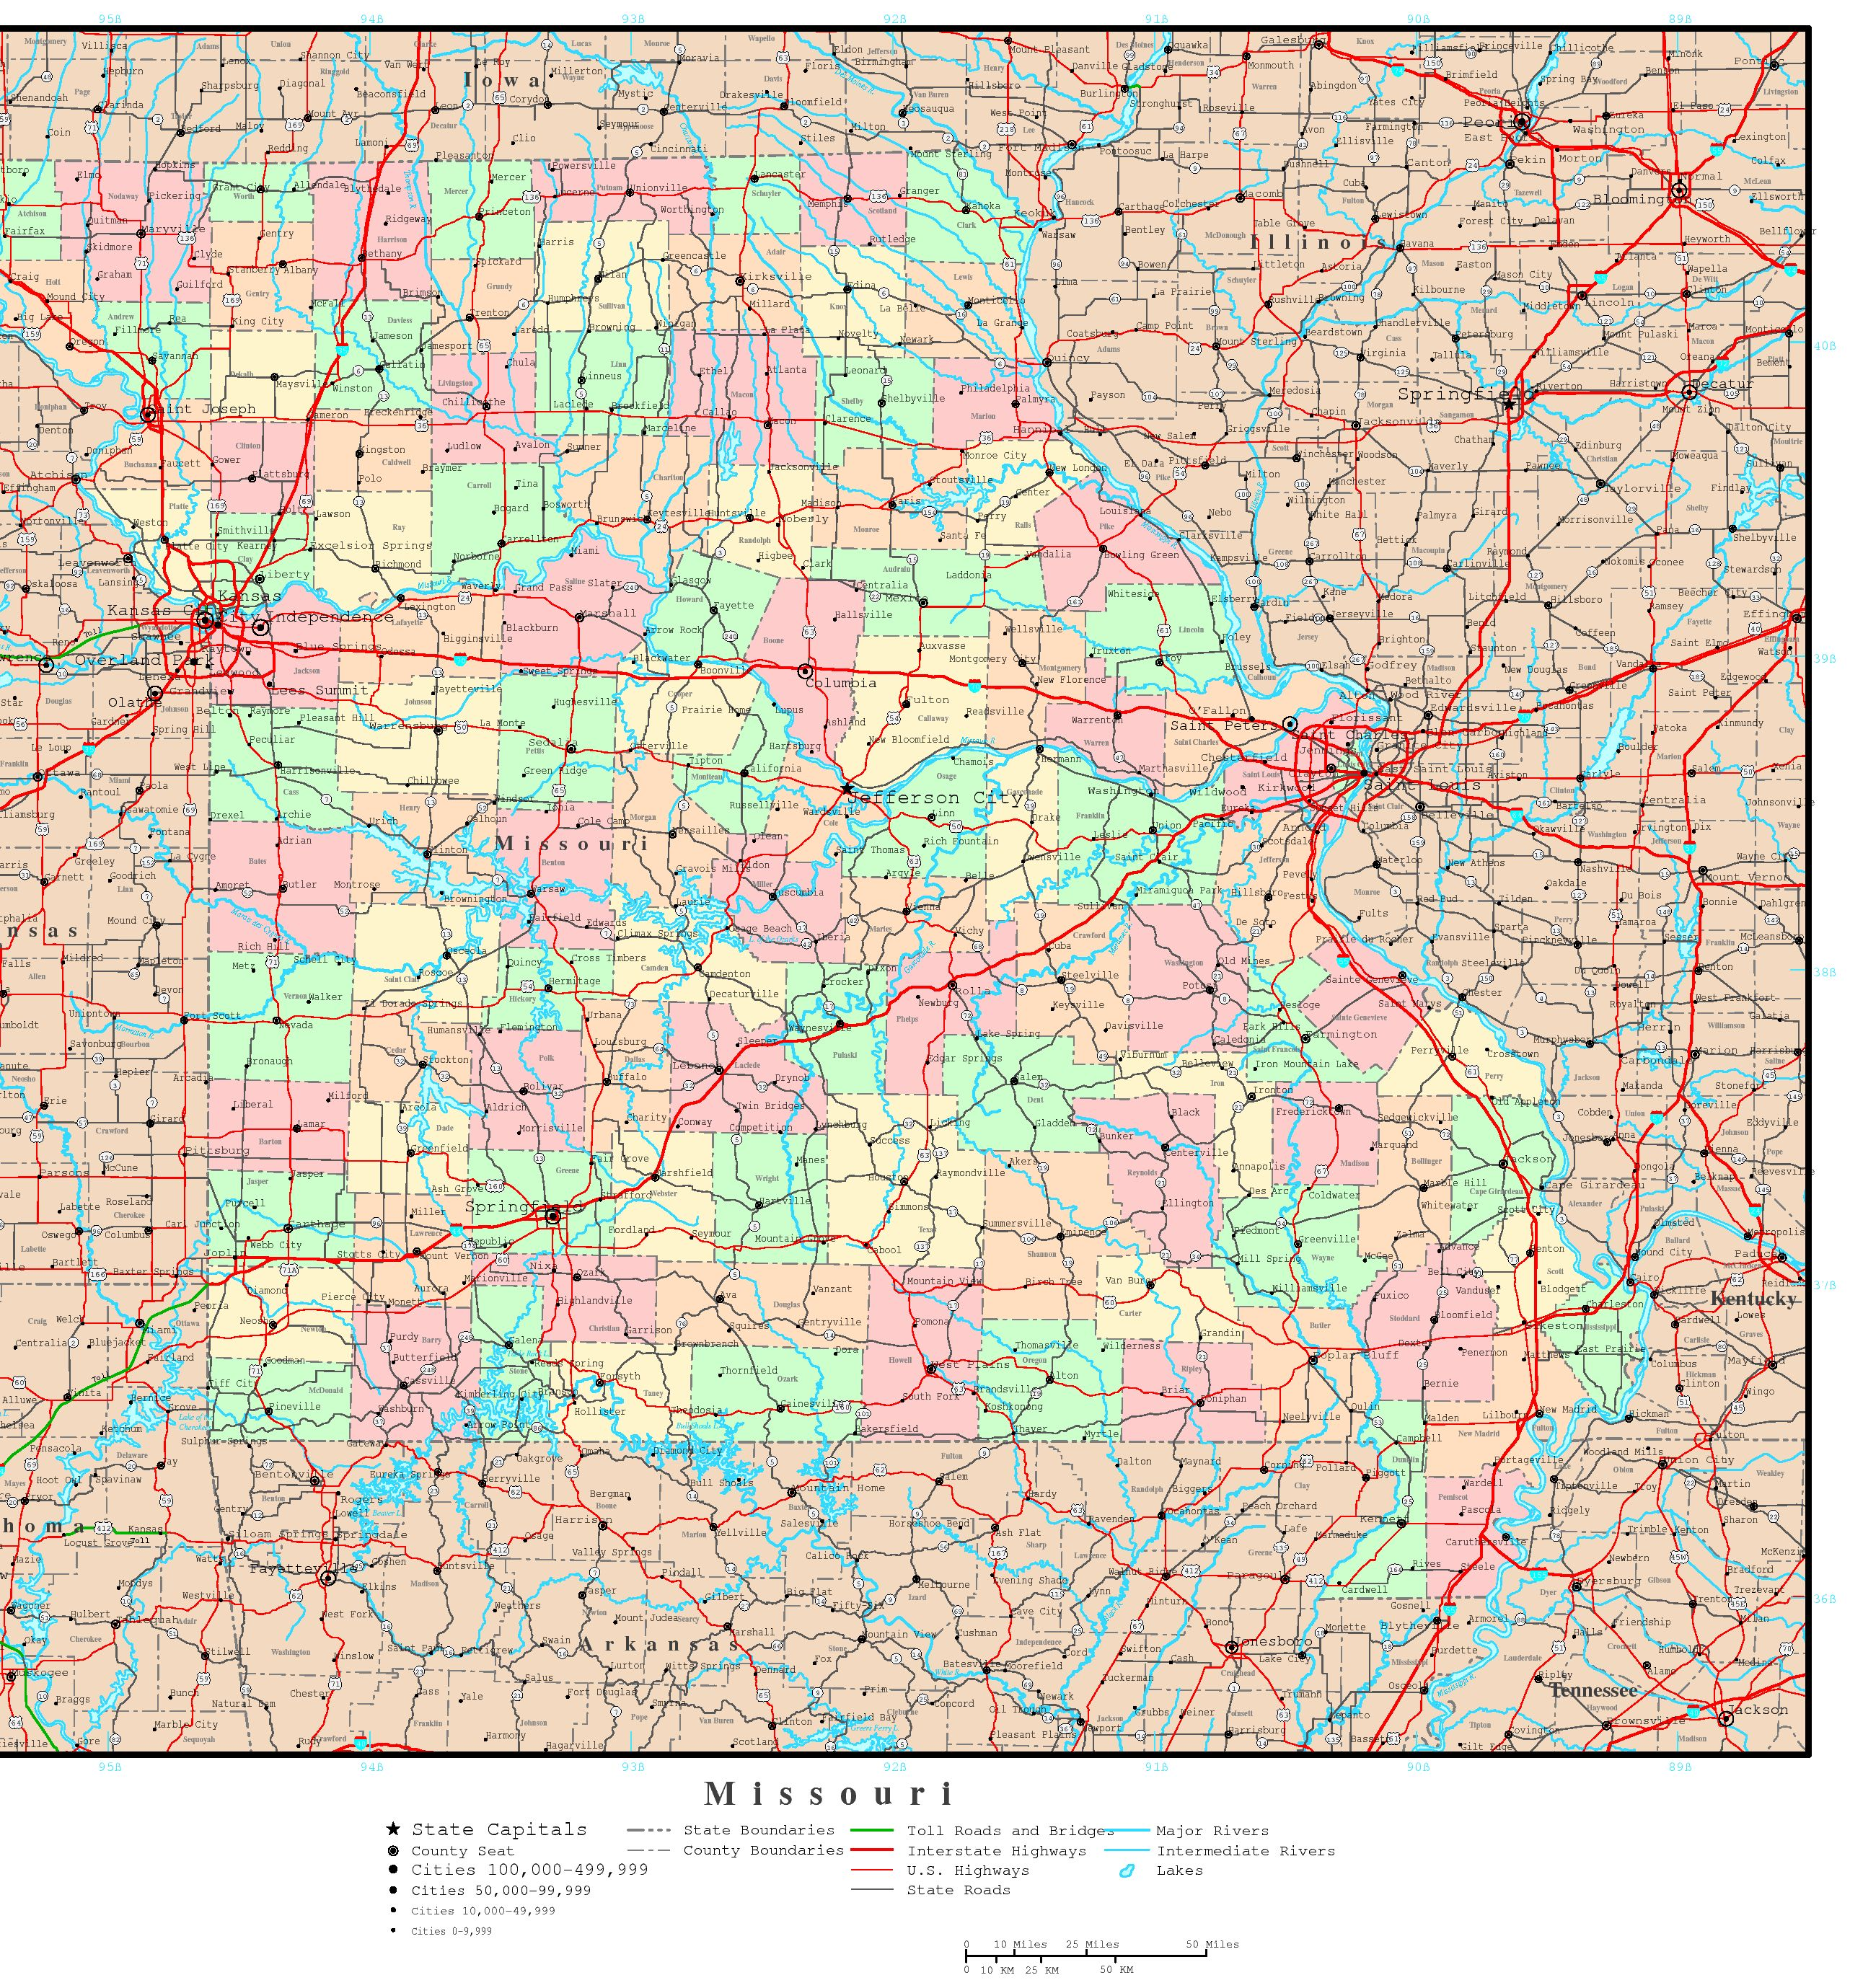 Missouri Political Map - Missourimap